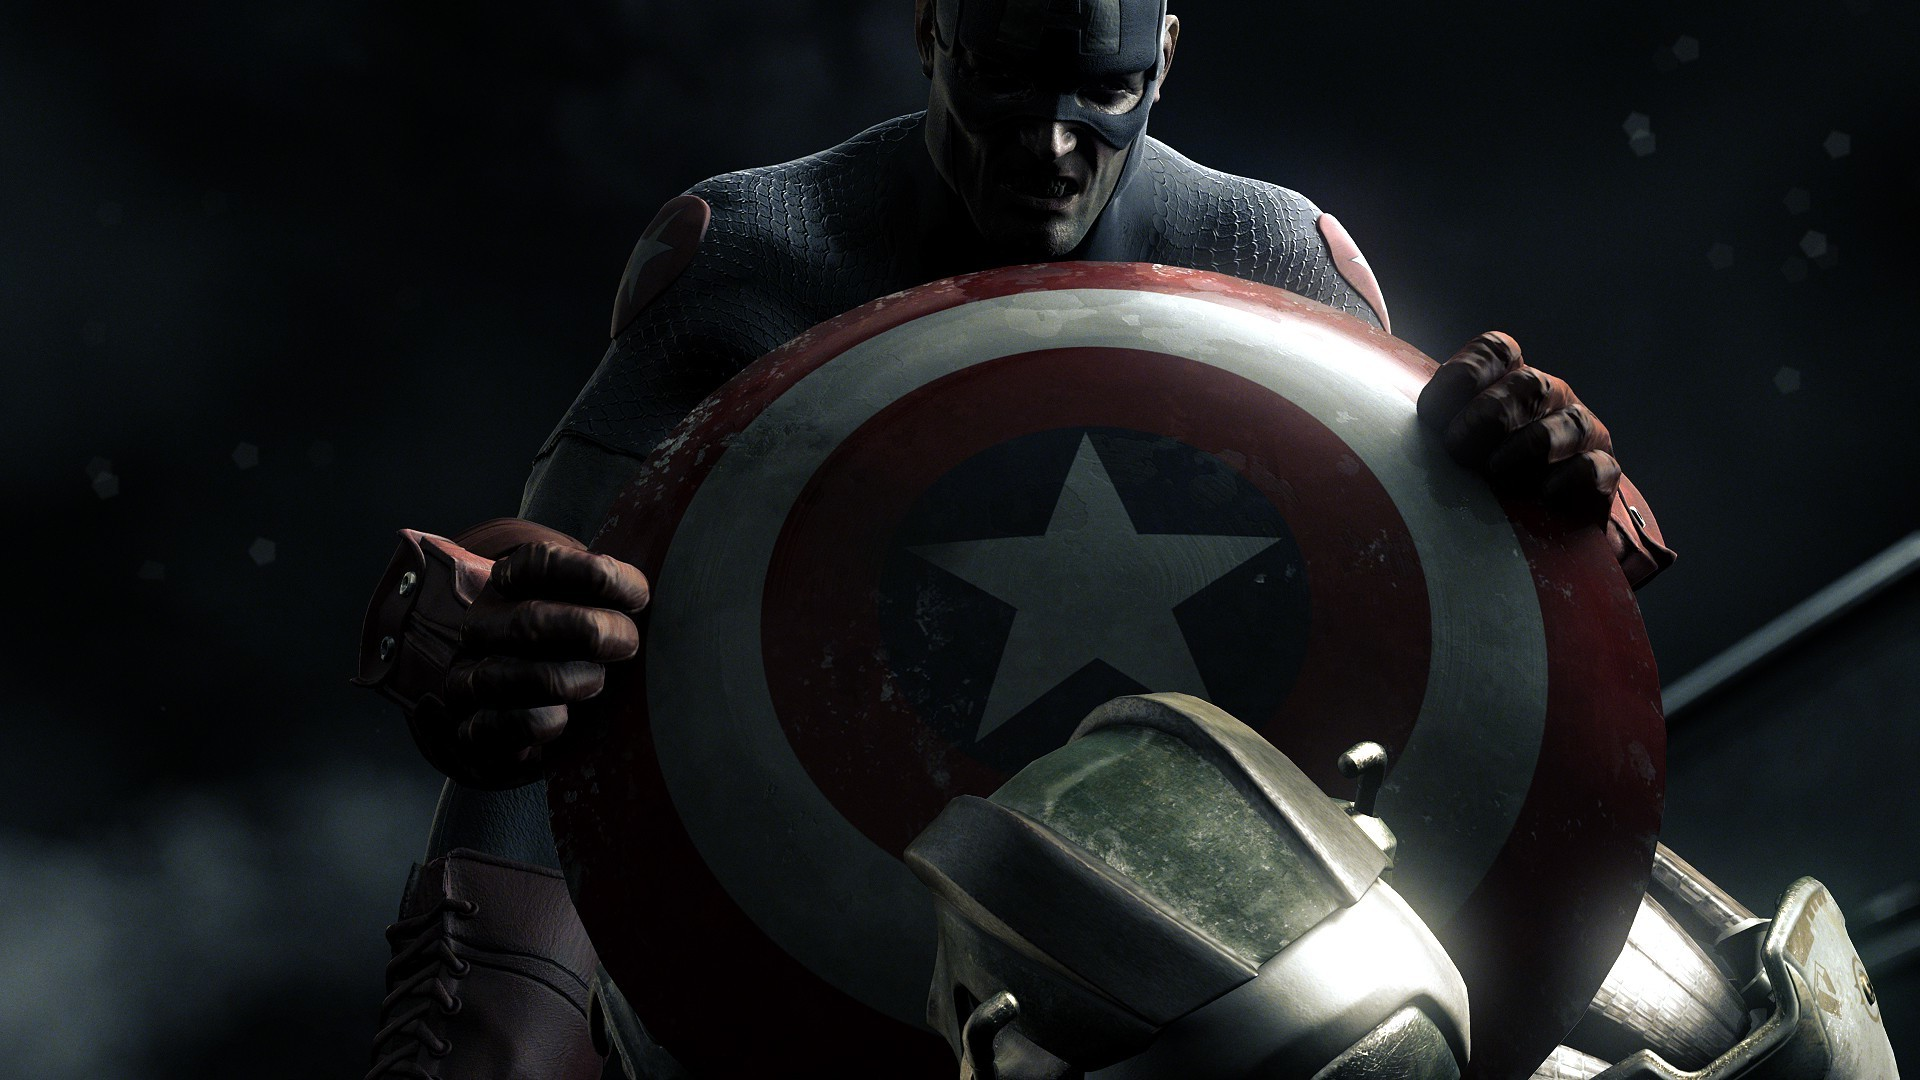 Fantastic Wallpaper Marvel Winter Soldier - 65343  Perfect Image Reference_1276.jpg